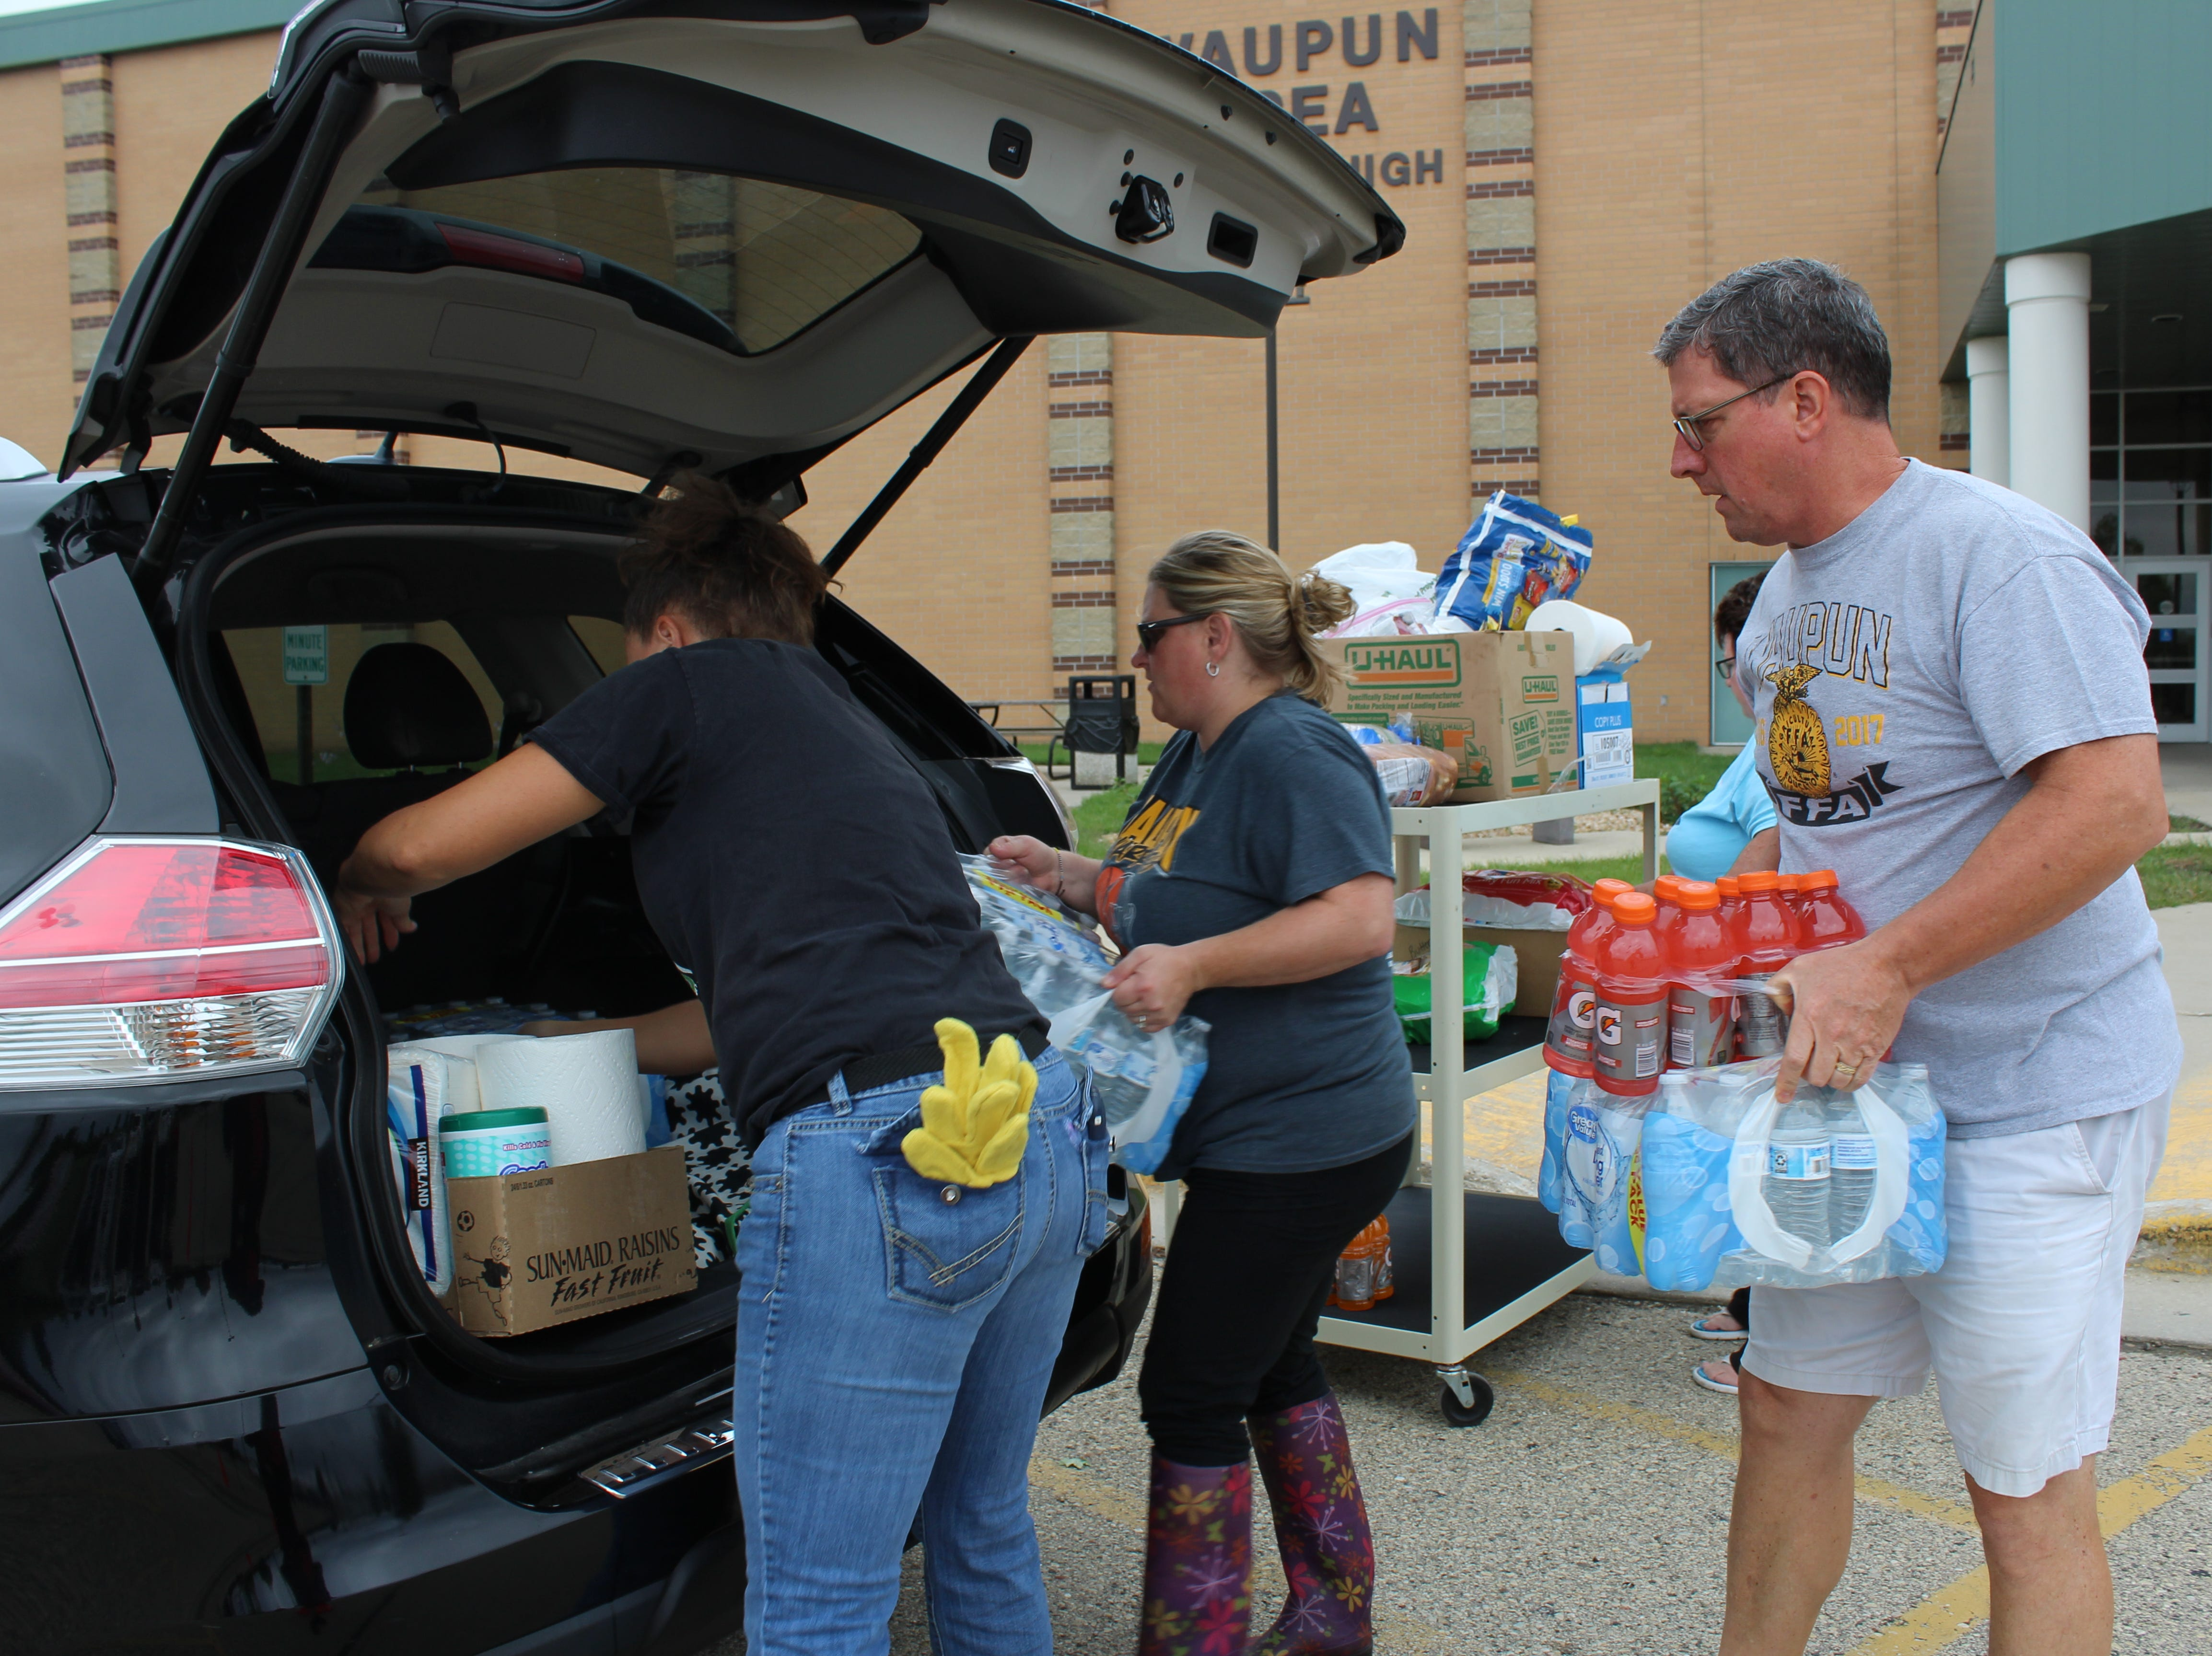 Waupun Area School District staff members load supplies and food into a vehicle to be delivered to sites impacted by the July 28 tornado.